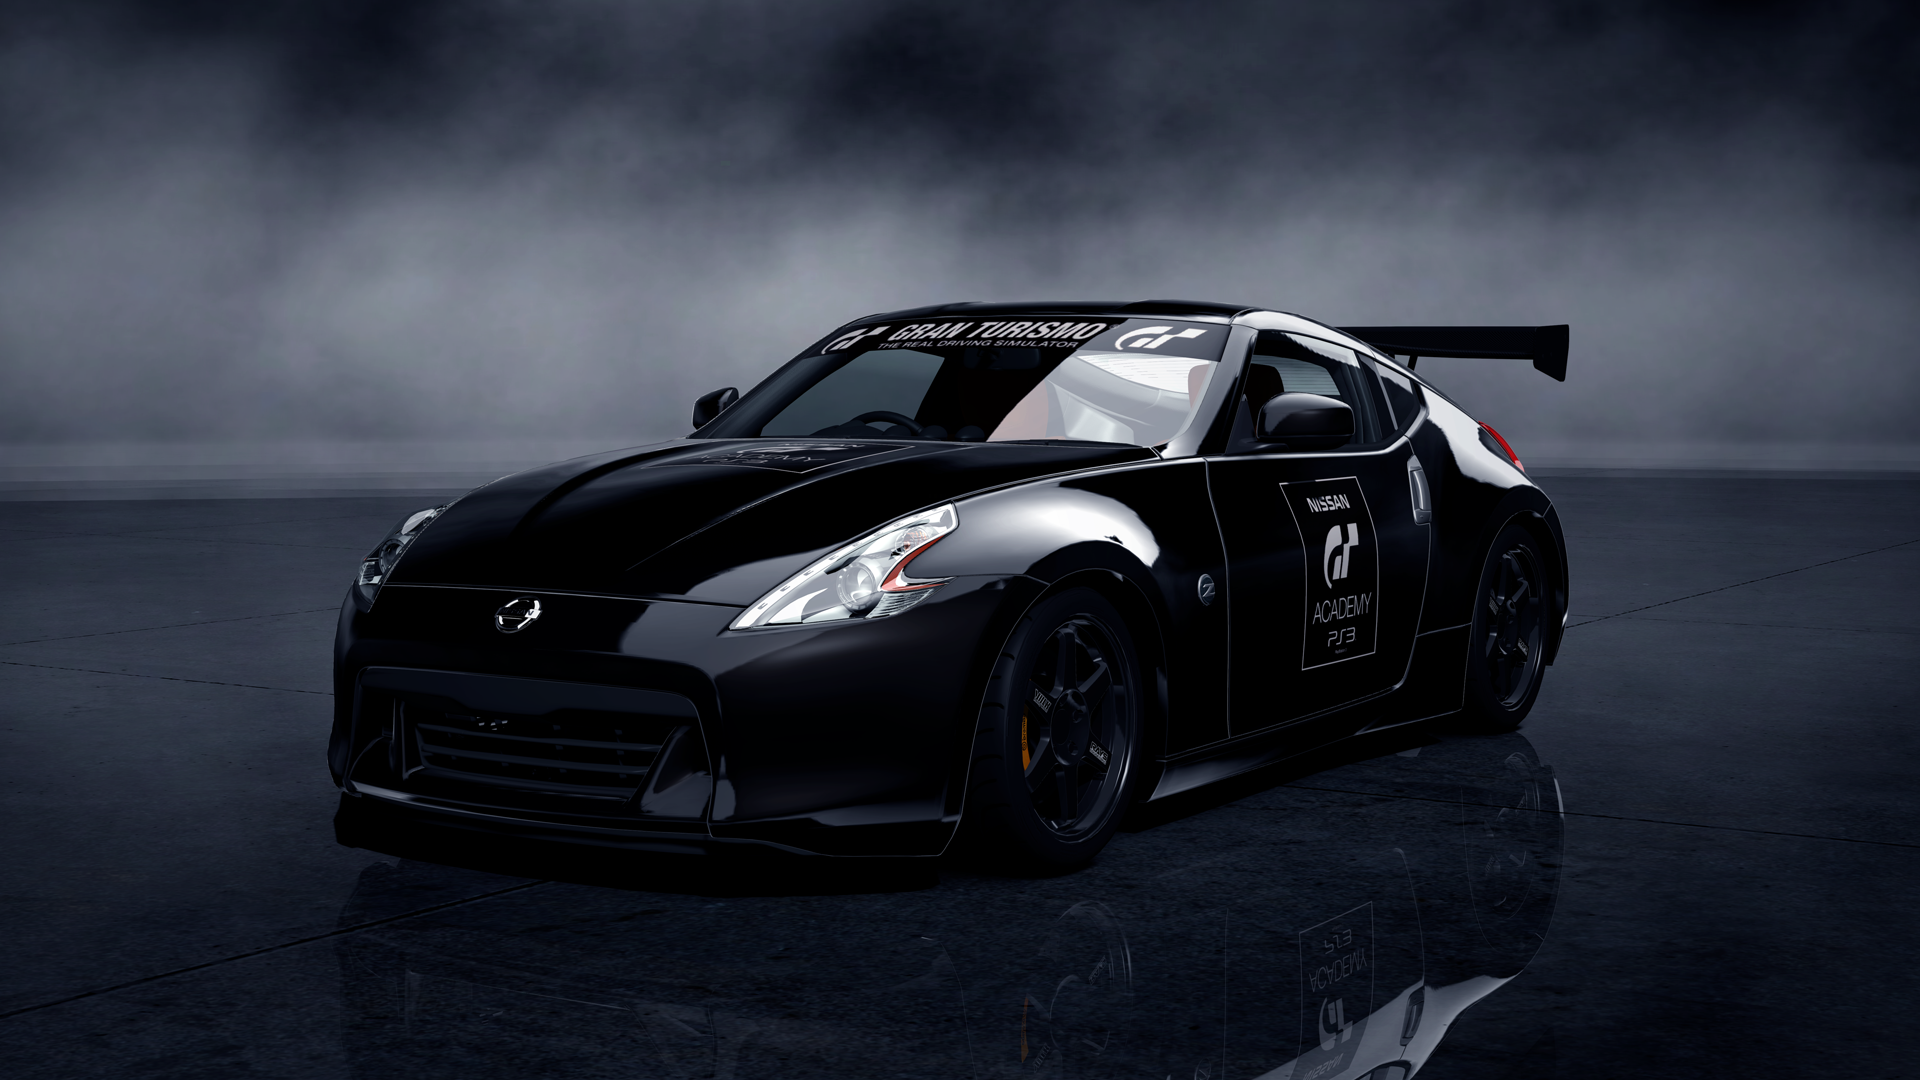 Nissan 370 Z Wallpaper Posted By Zoey Anderson